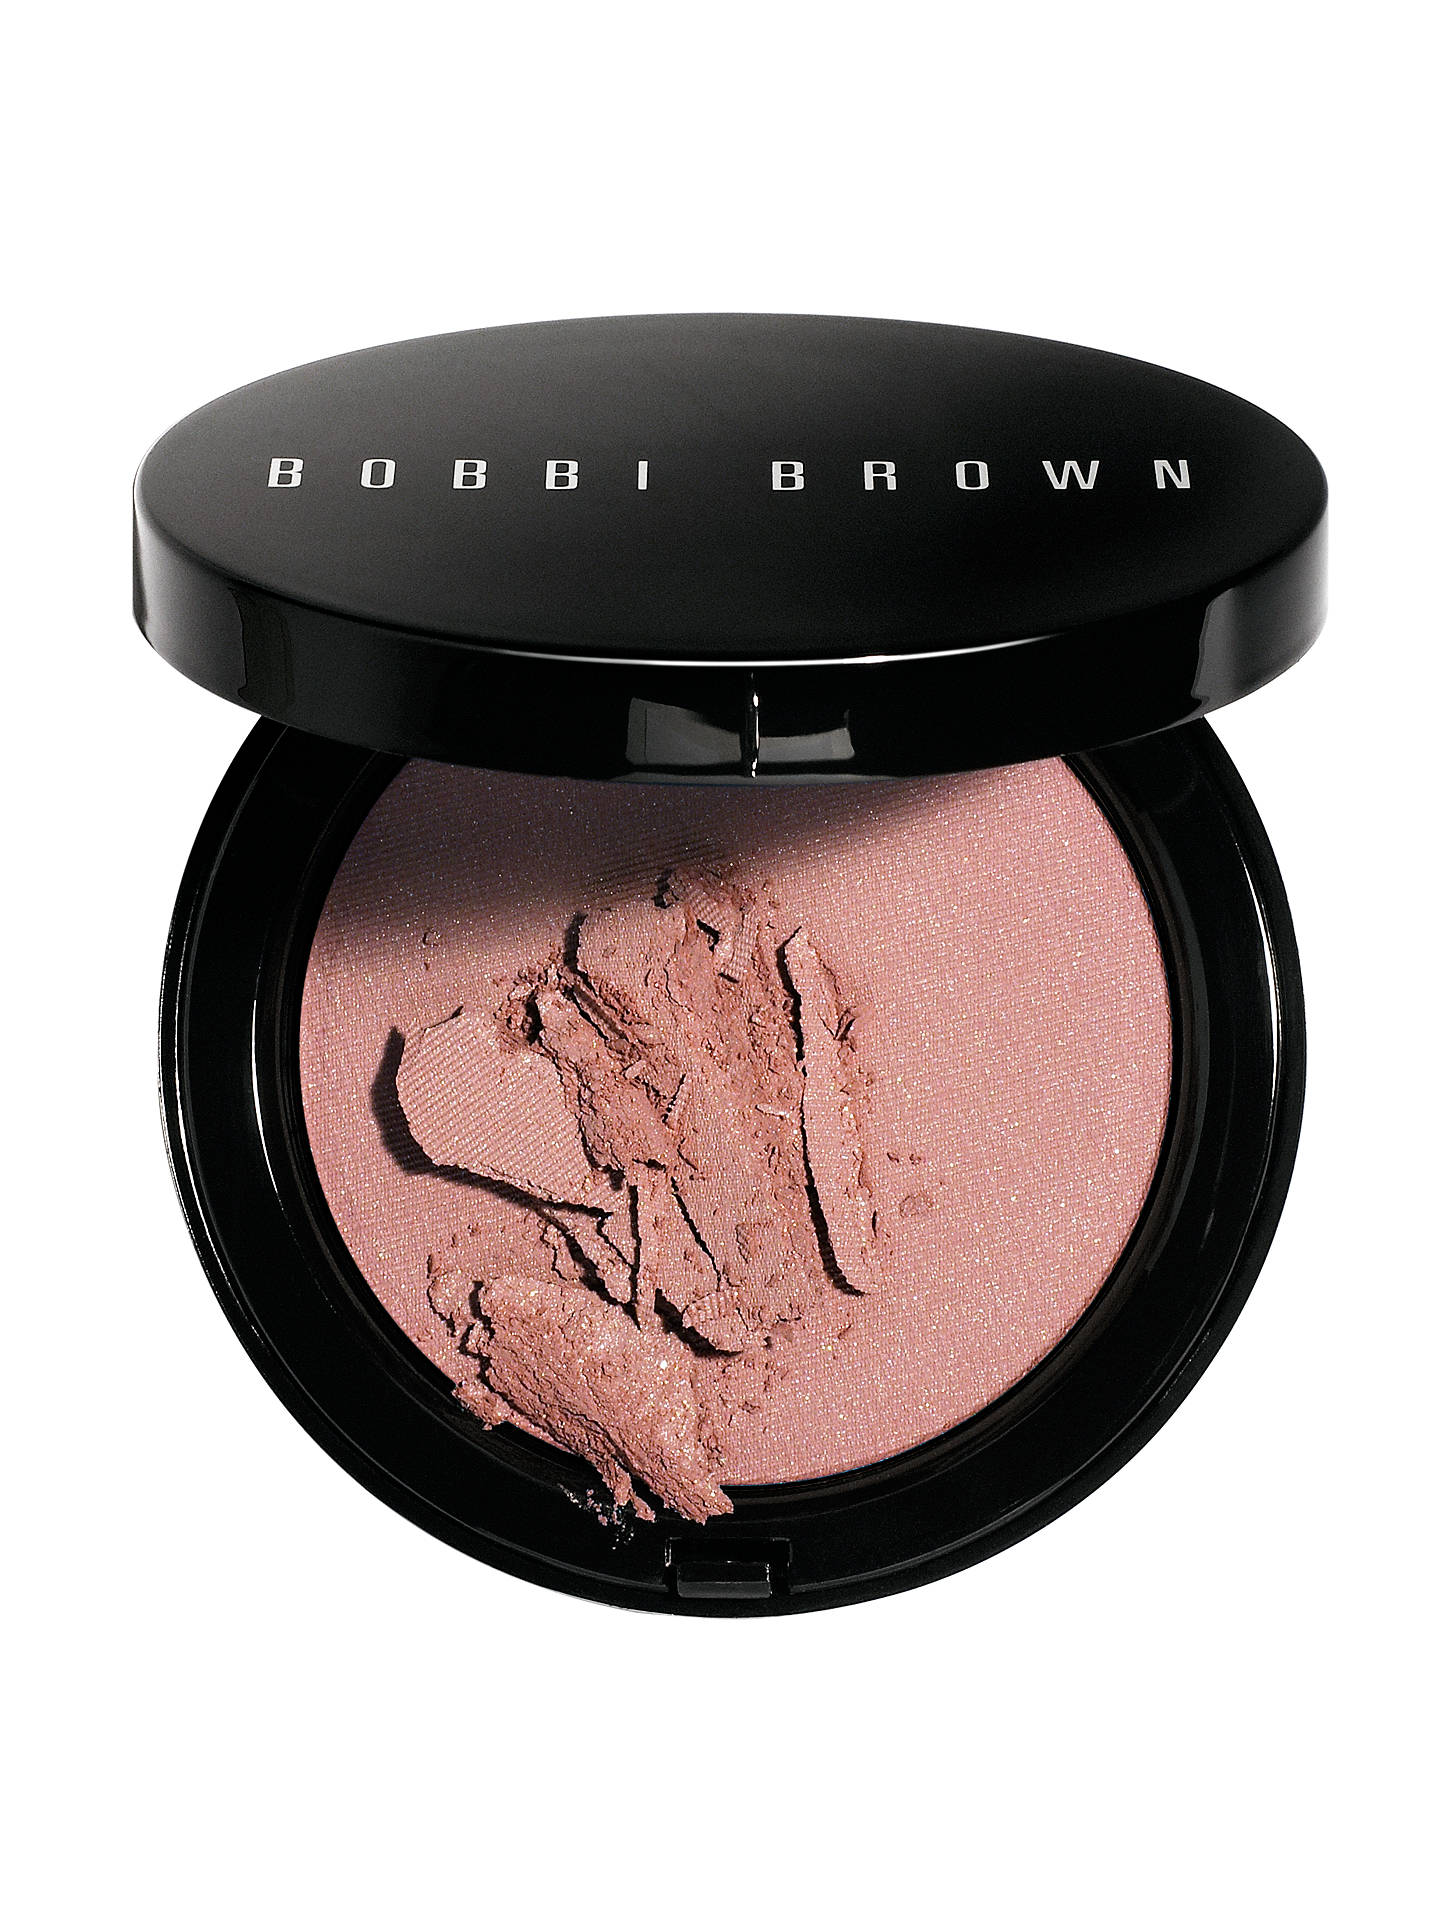 BuyBobbi Brown Illuminating Bronzing Powder, Aruba Online at johnlewis.com